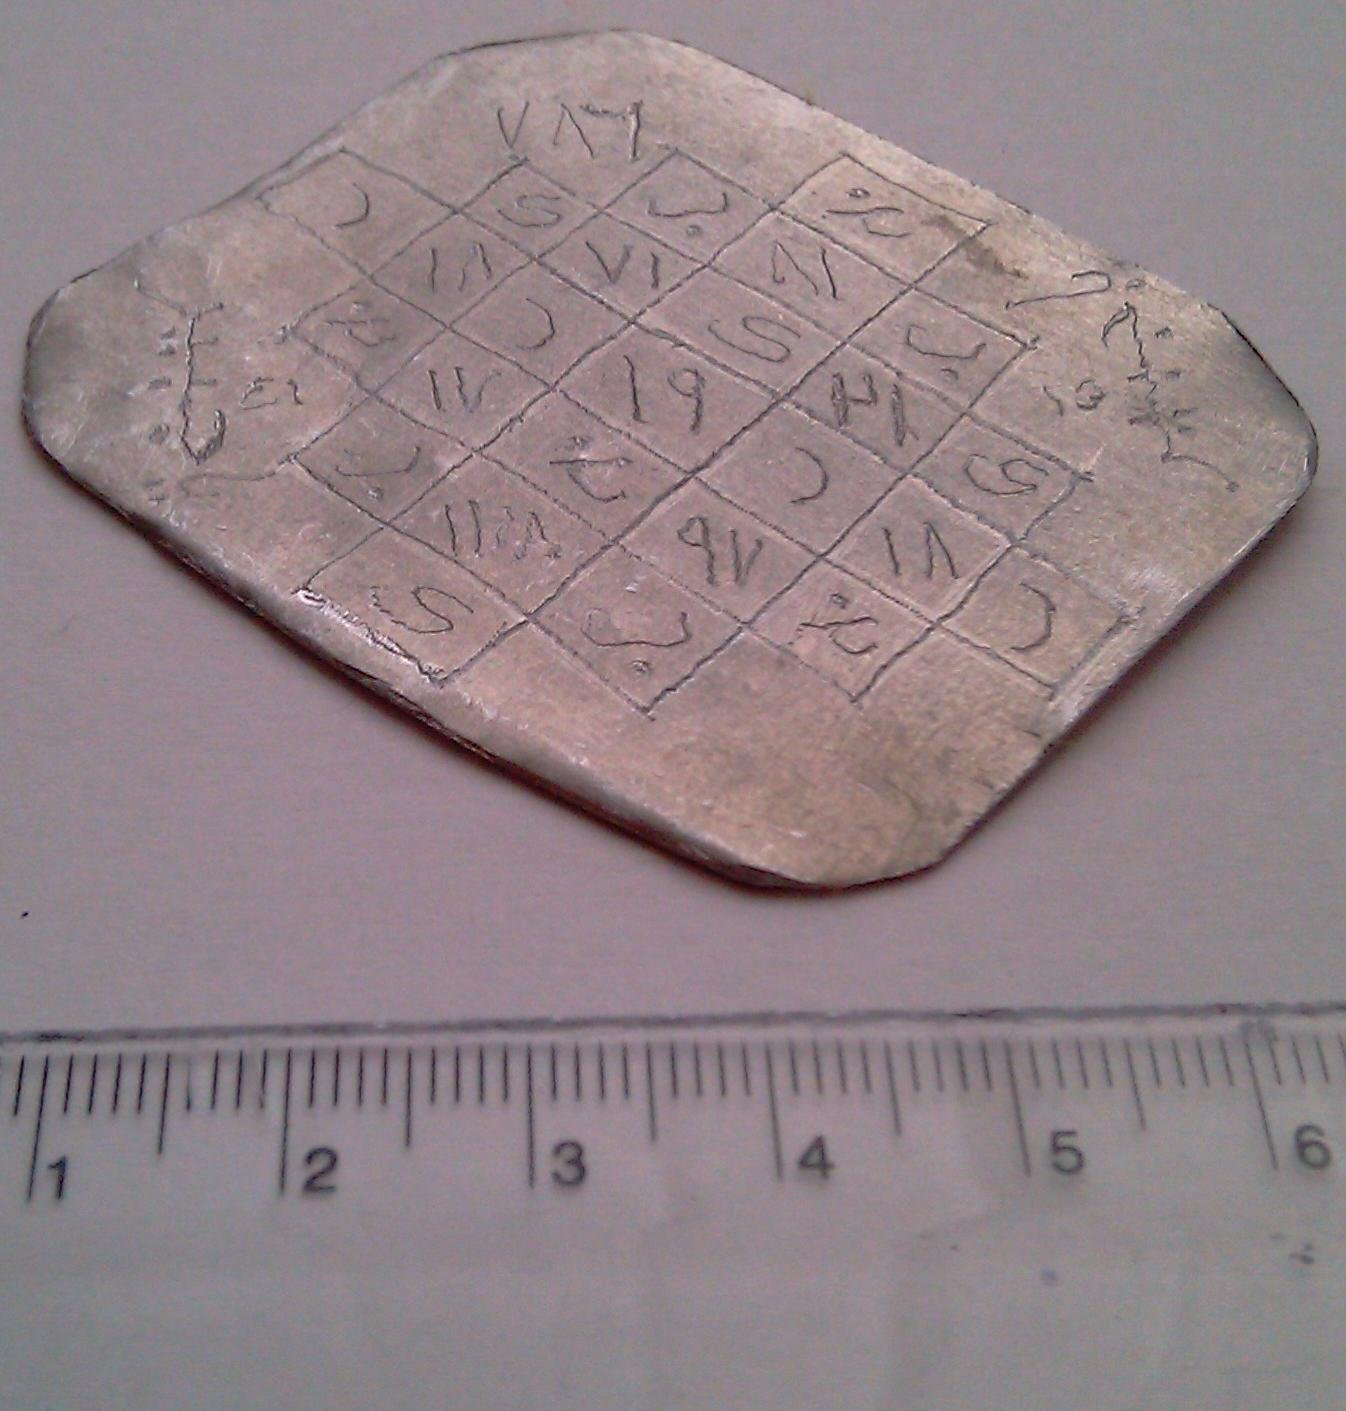 Arabic islamic metal amulet taweez for knowledge and wisdom